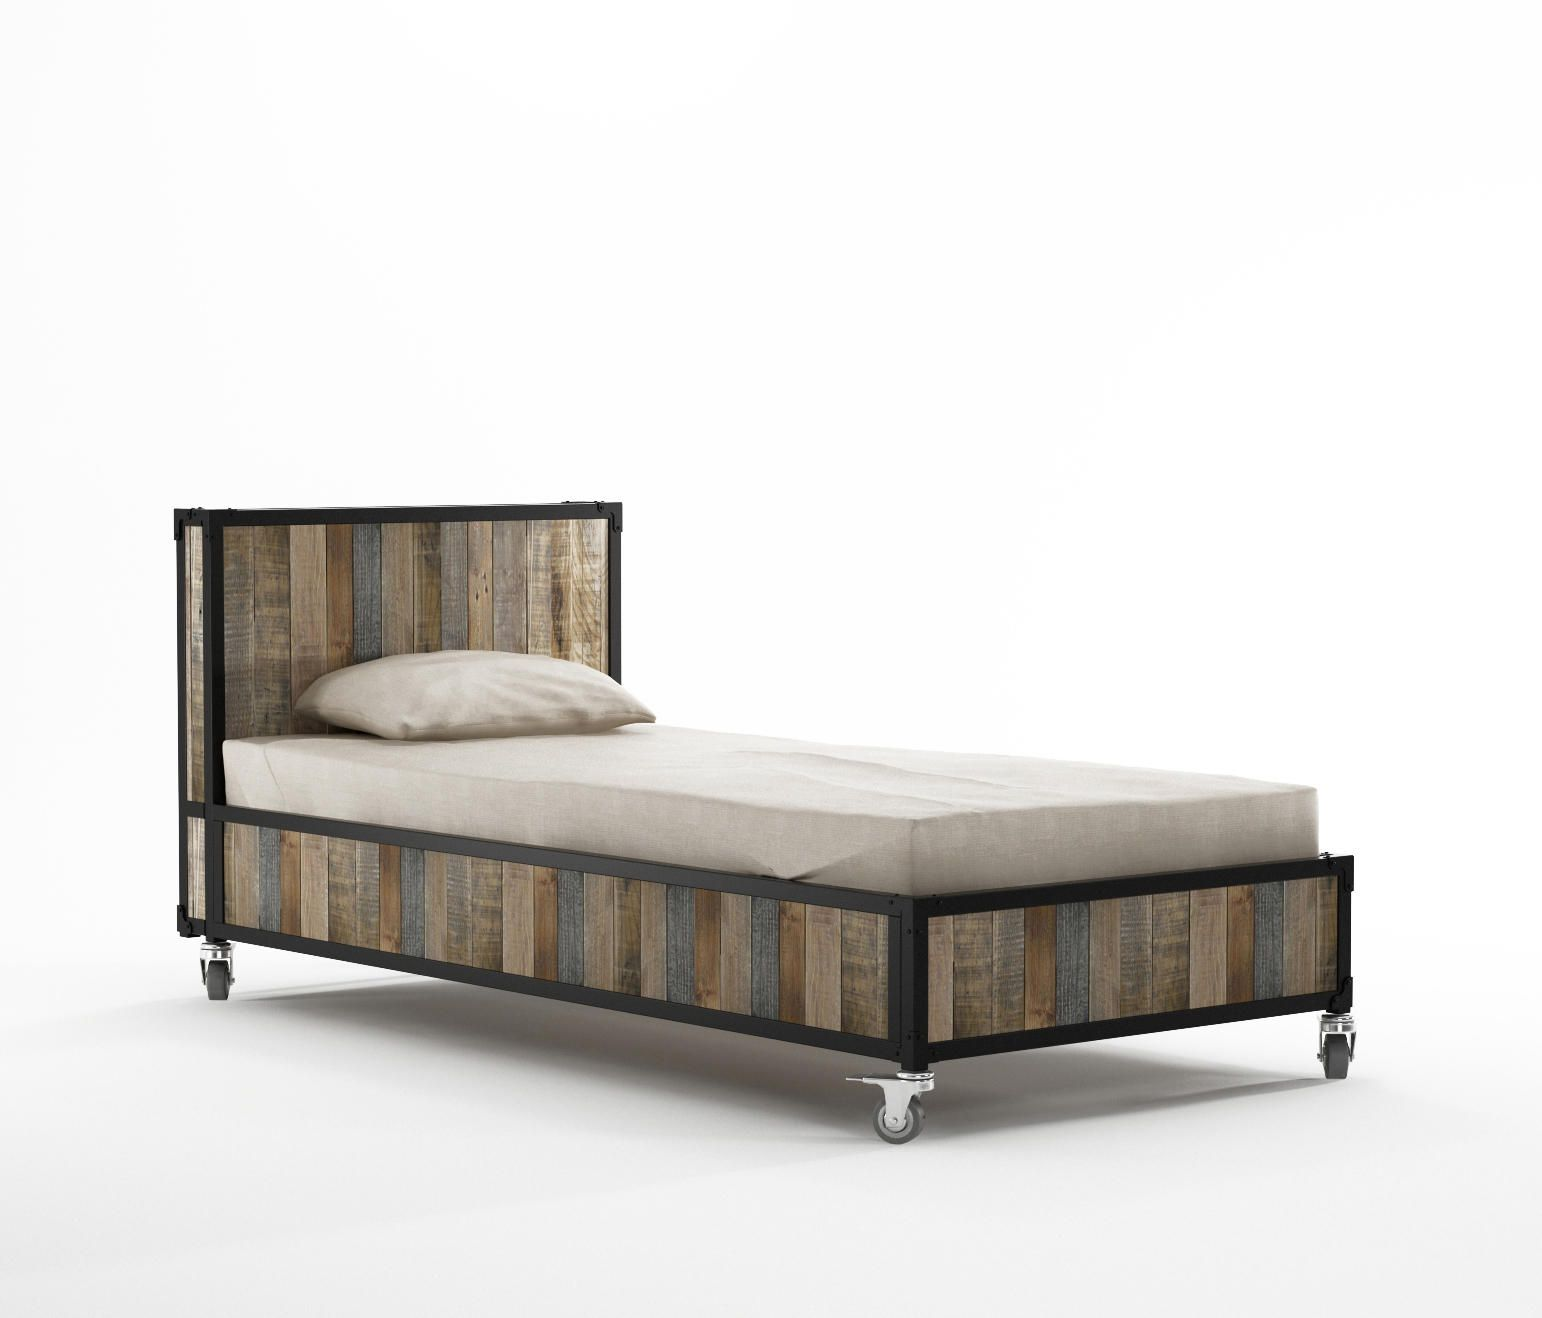 Atelier Single Bed Designer Single Beds From Karpenter All Information High Resolution Images Cads Catalogues Contact Inf Single Bed Bed Bed Design